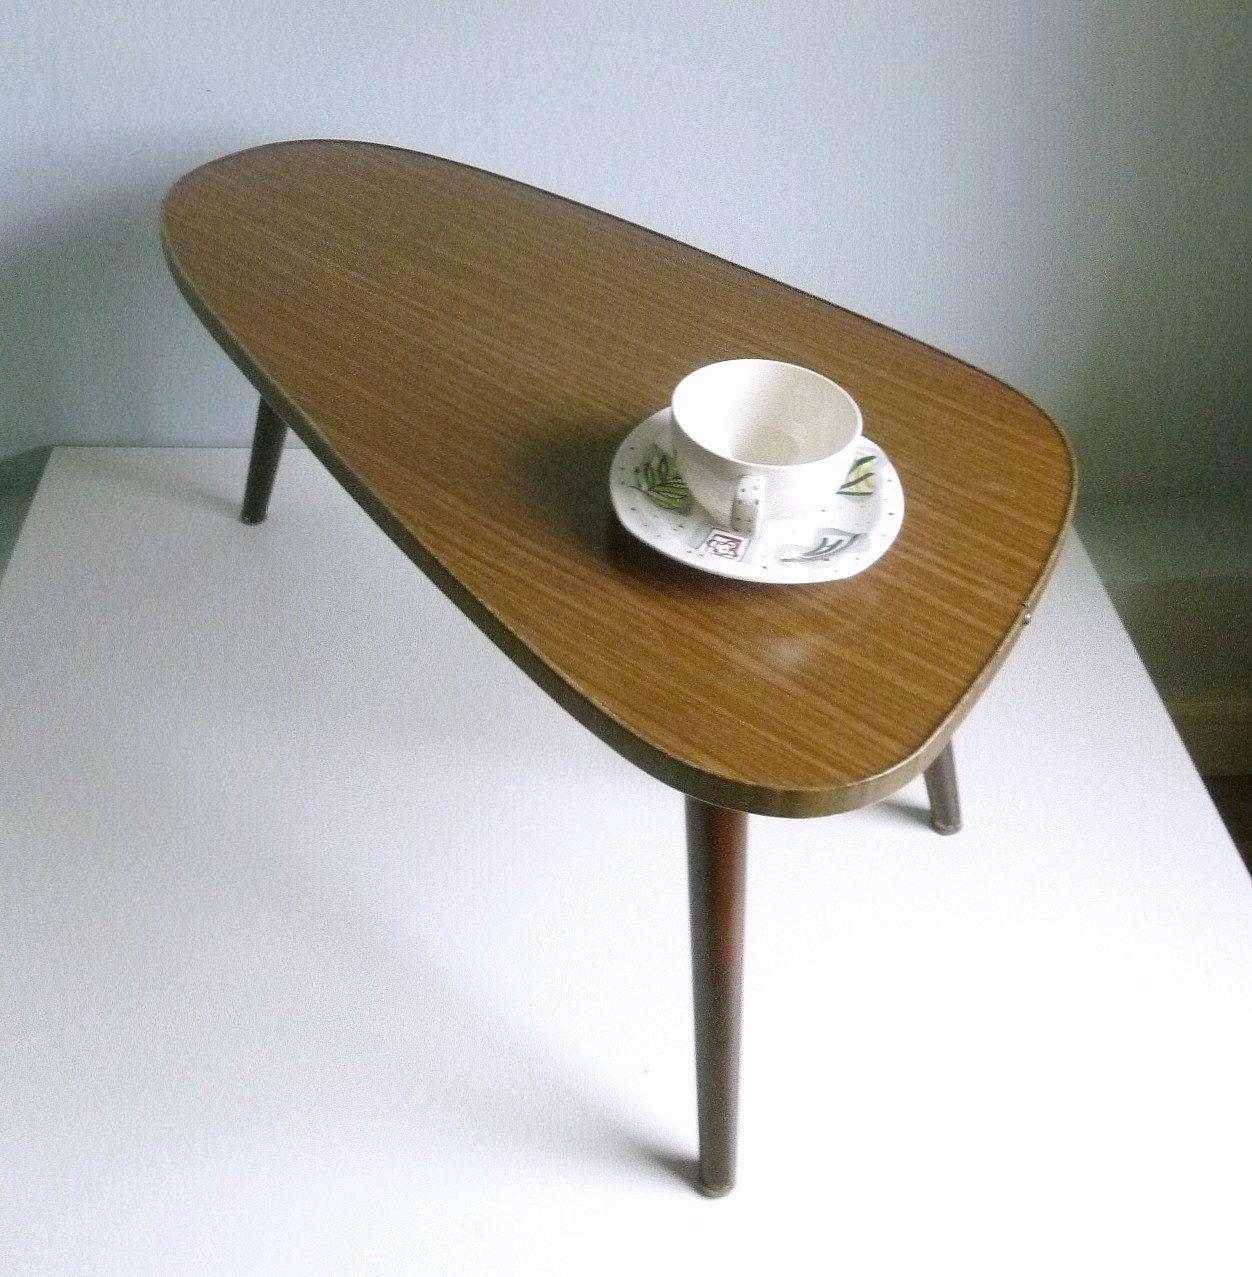 Pin By Claire Ogilvie On For The Apartment 1960s Home Decor Mid Century Modern Coffee Table Coffee Table [ 1277 x 1252 Pixel ]